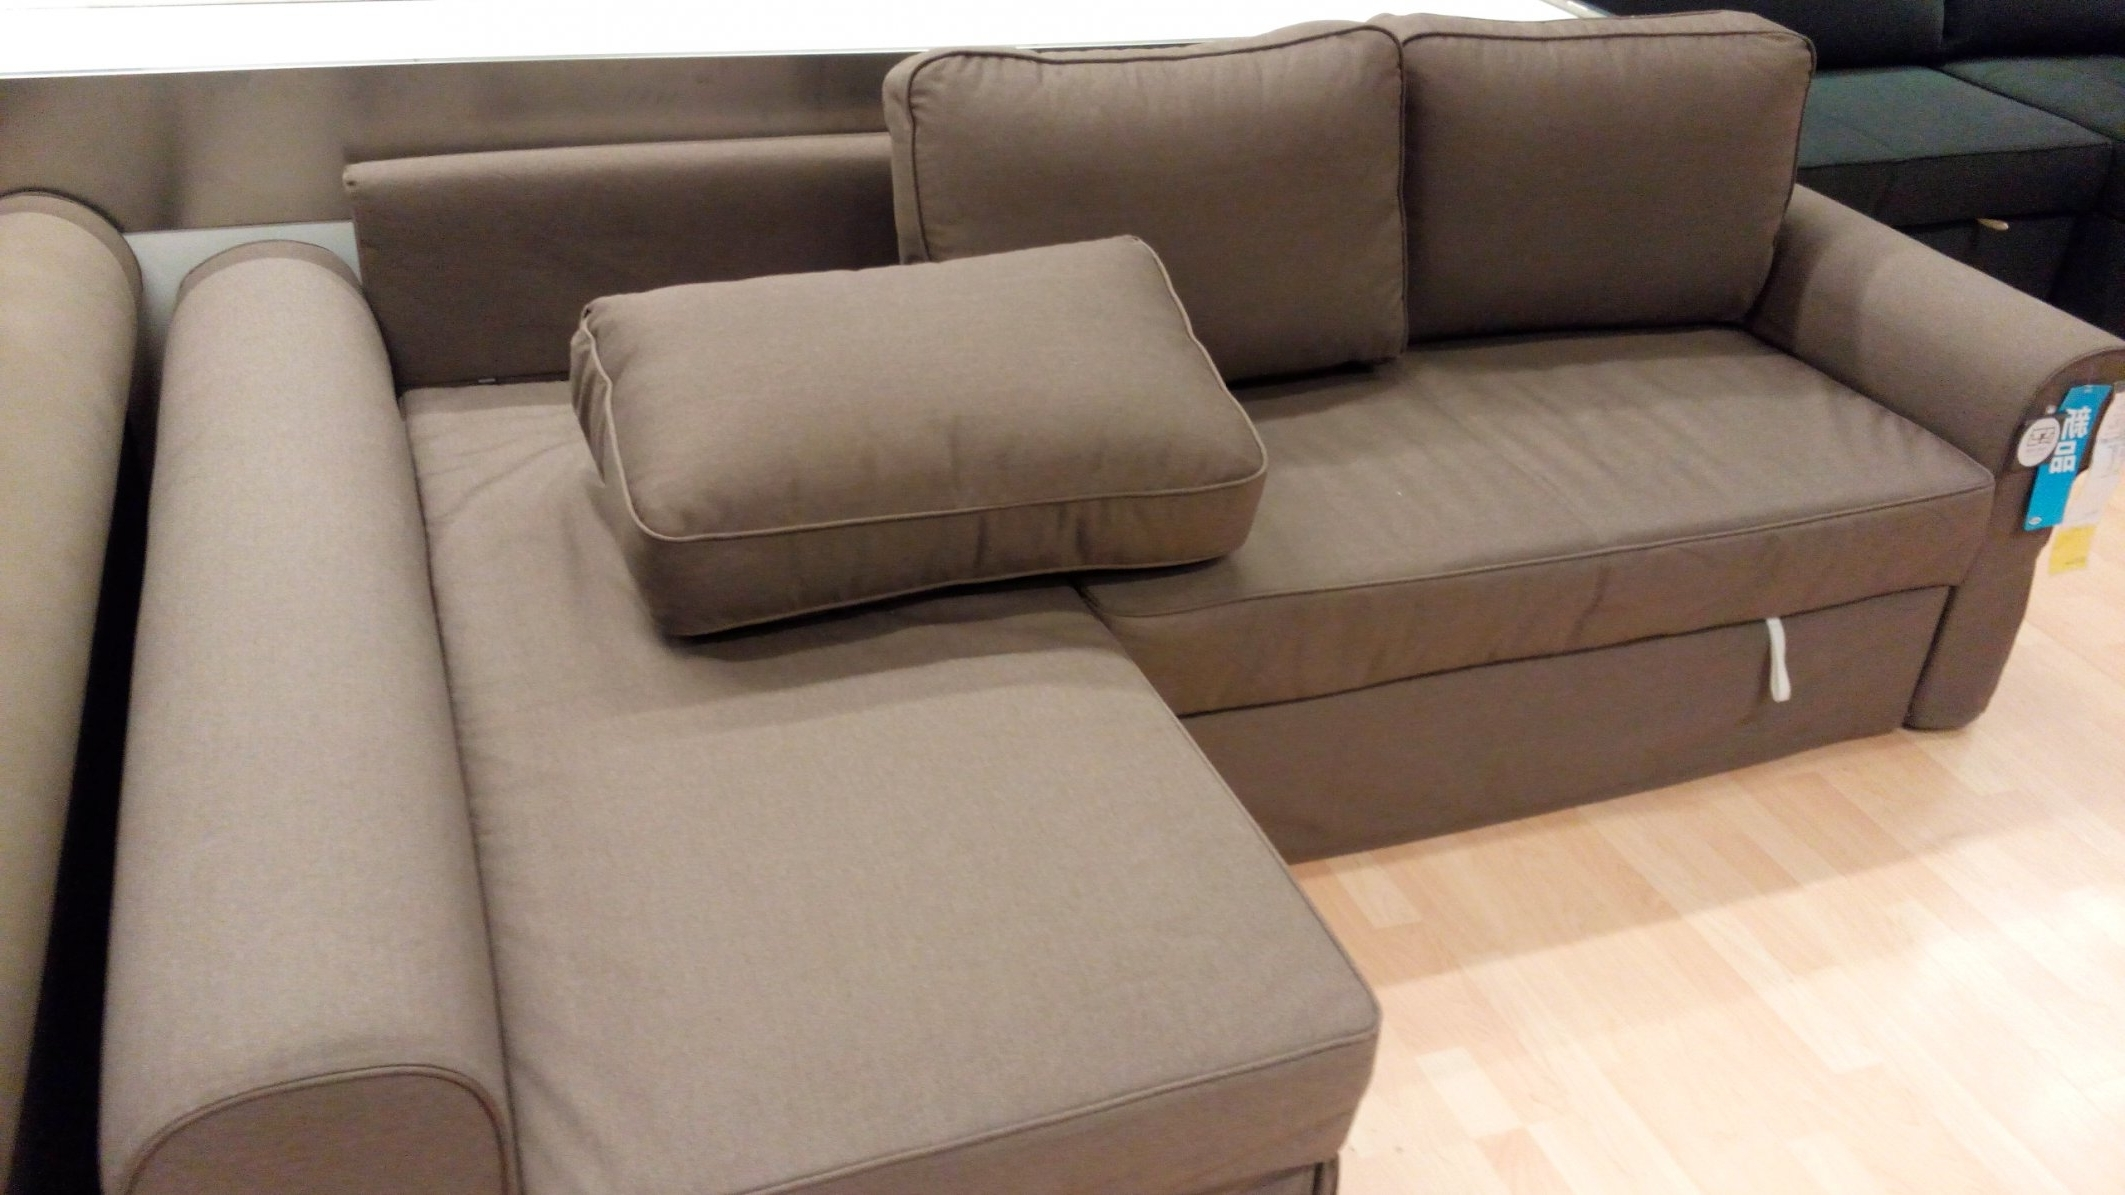 Manstad Sofas With Regard To Latest Manstad Sofa Bed Dimensions #2 Ikea Backabro Sofa Bed With Chaise (View 6 of 15)